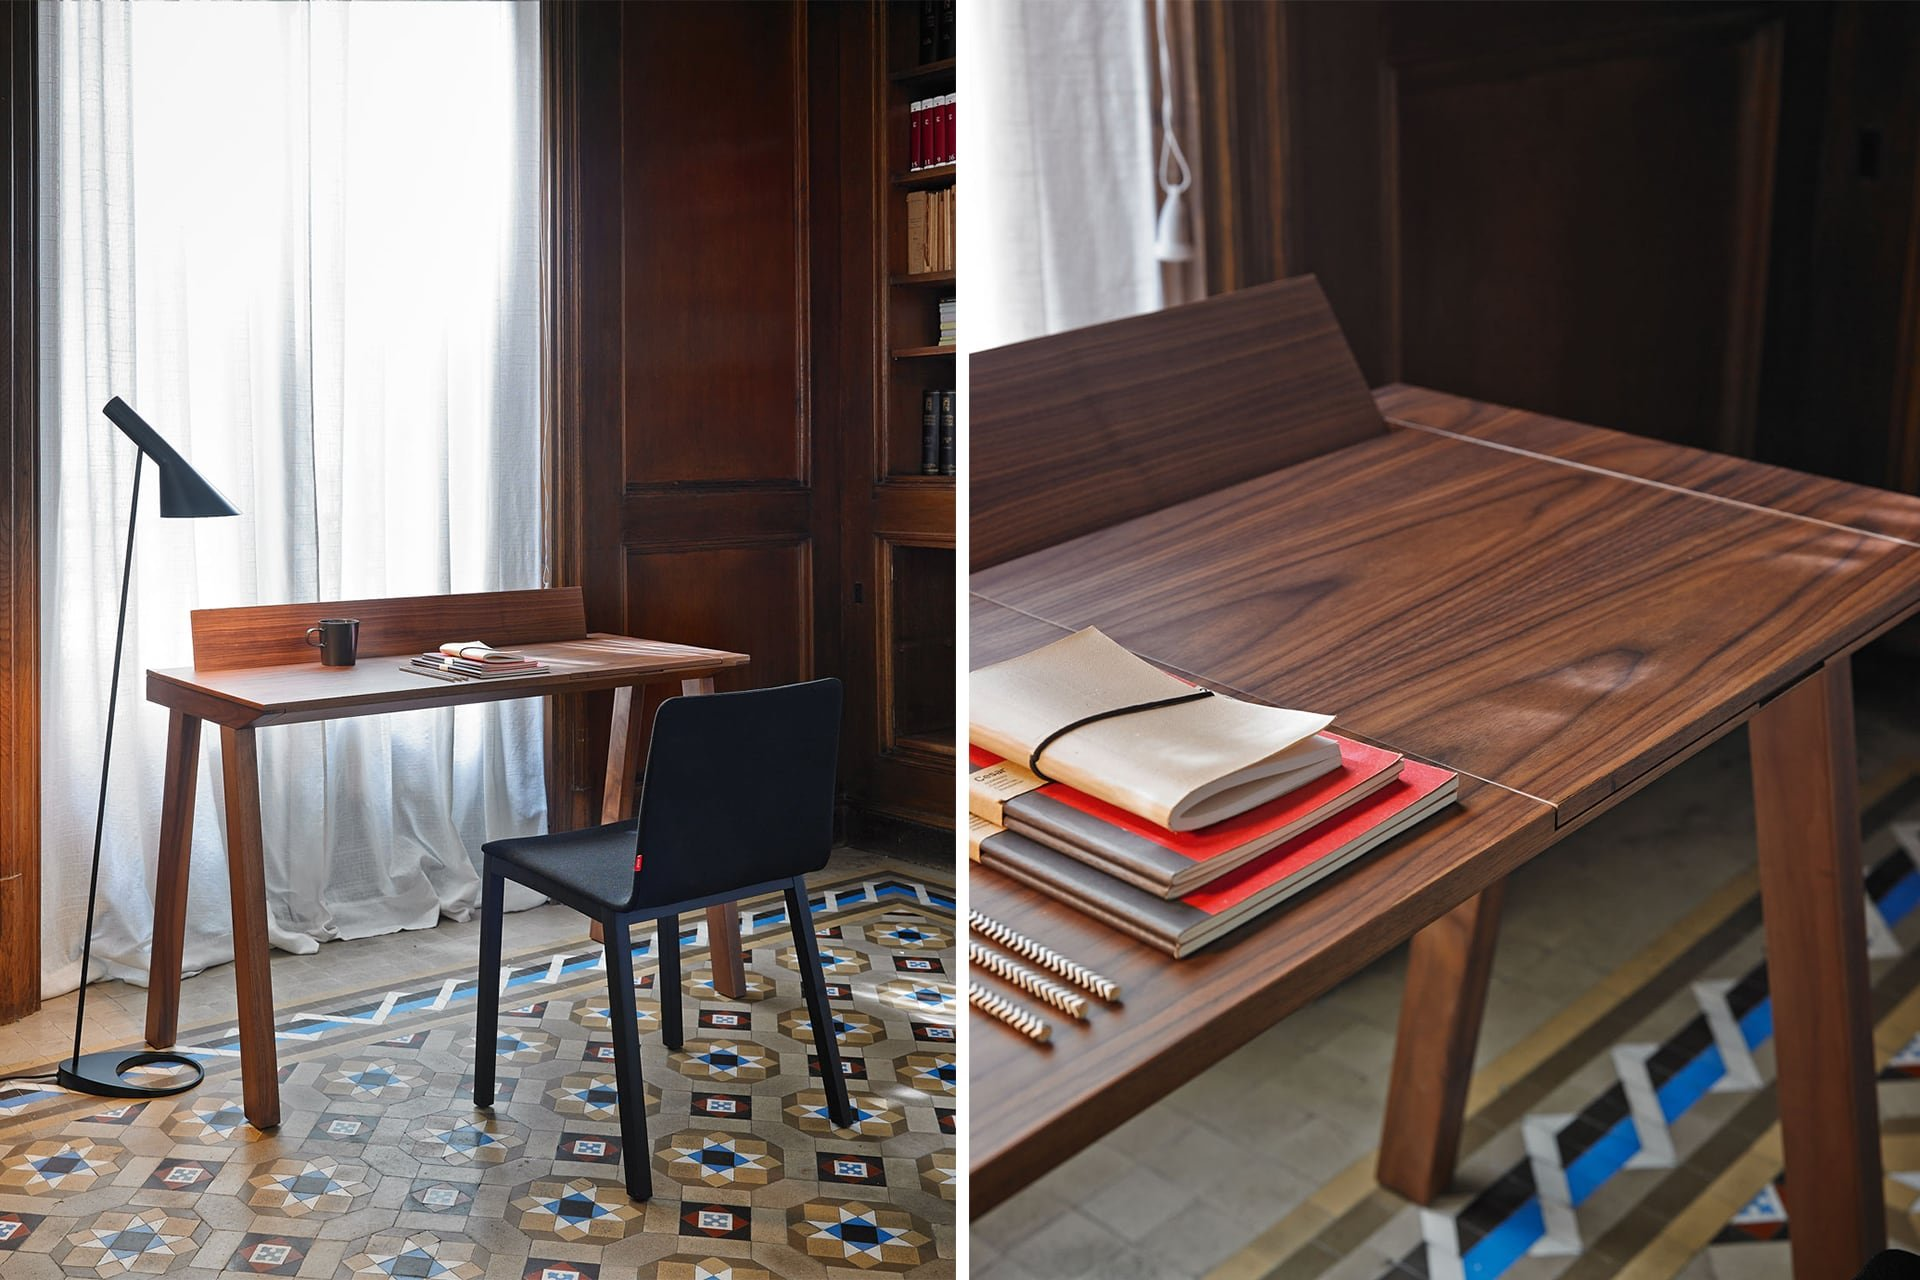 Ernest Desk from Punt Mobles, designed by Borja Garcia